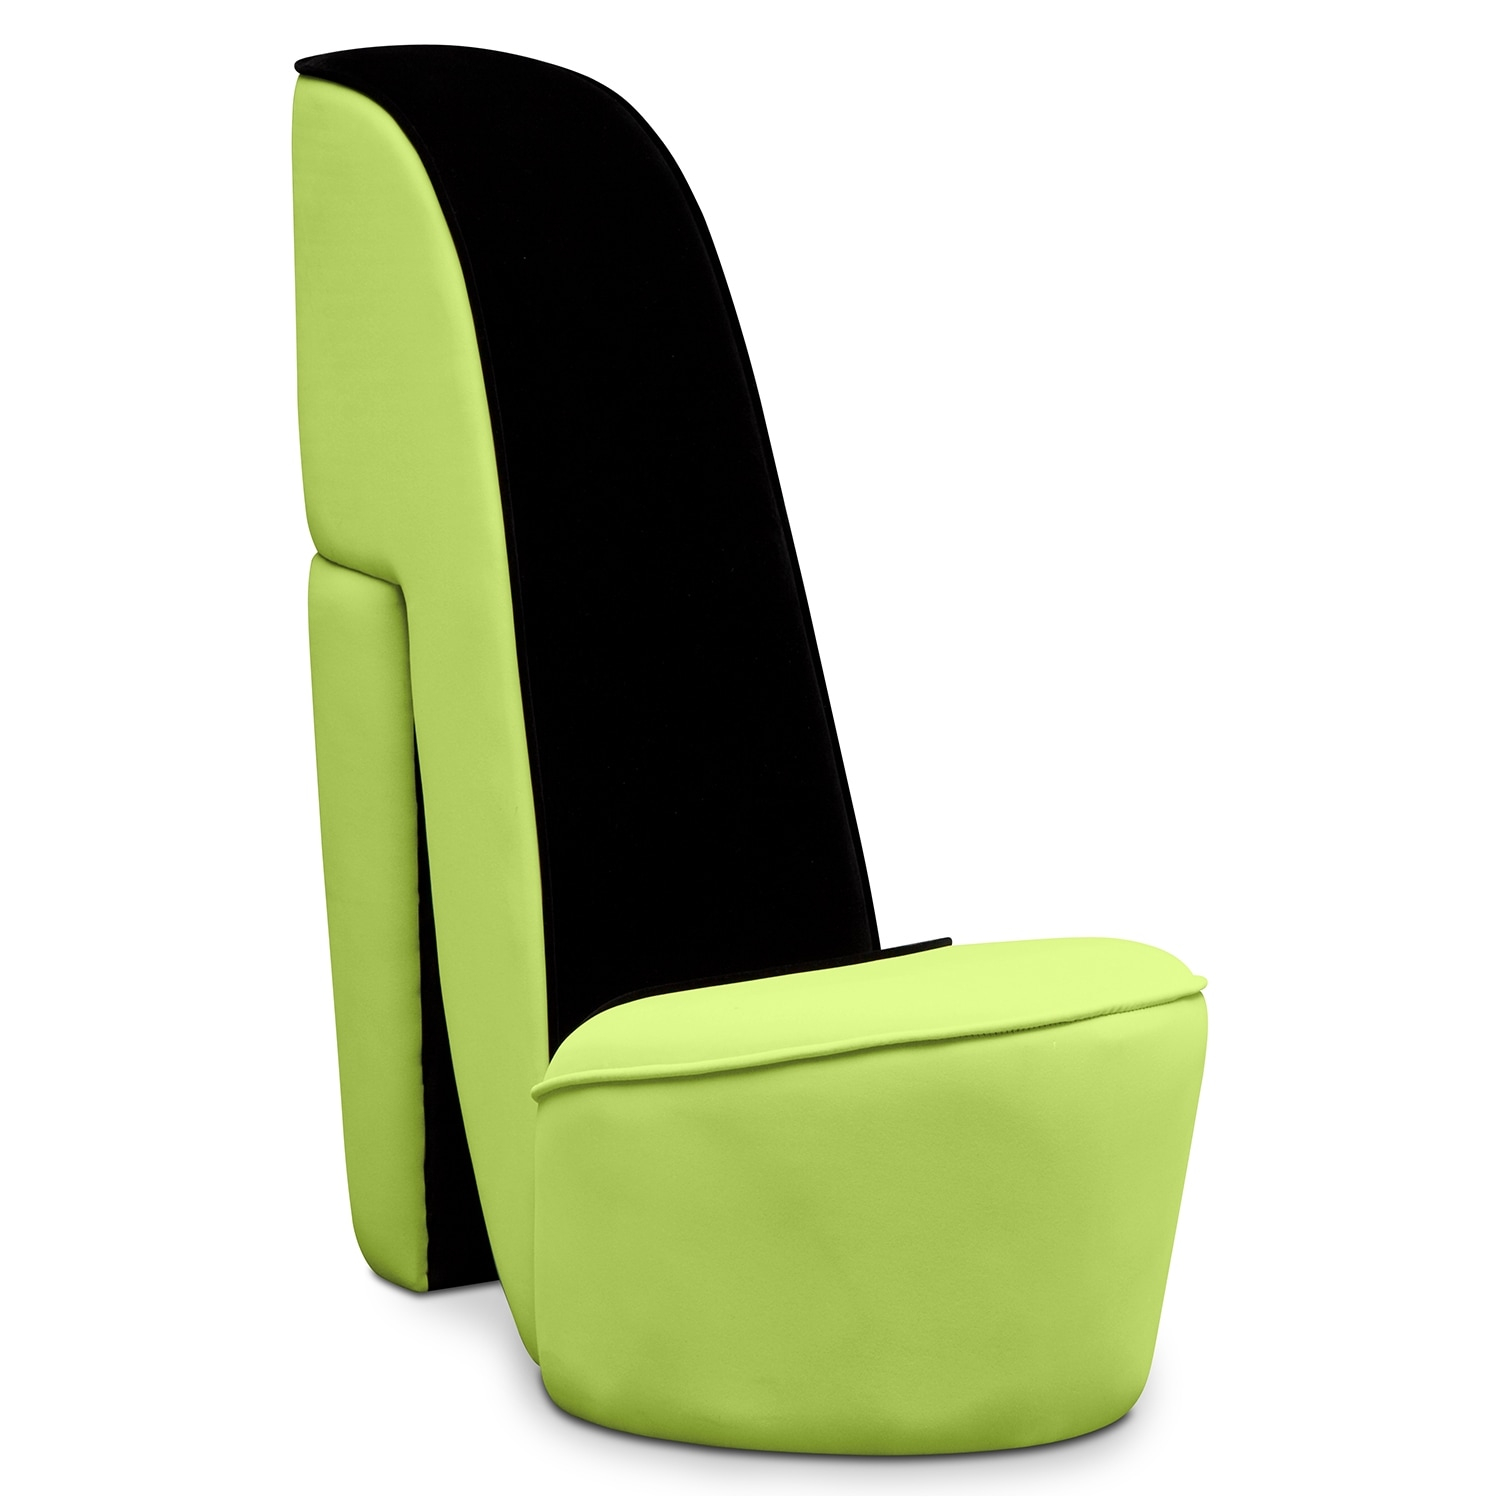 Living Room Furniture - Jordan Shoe Accent Chair